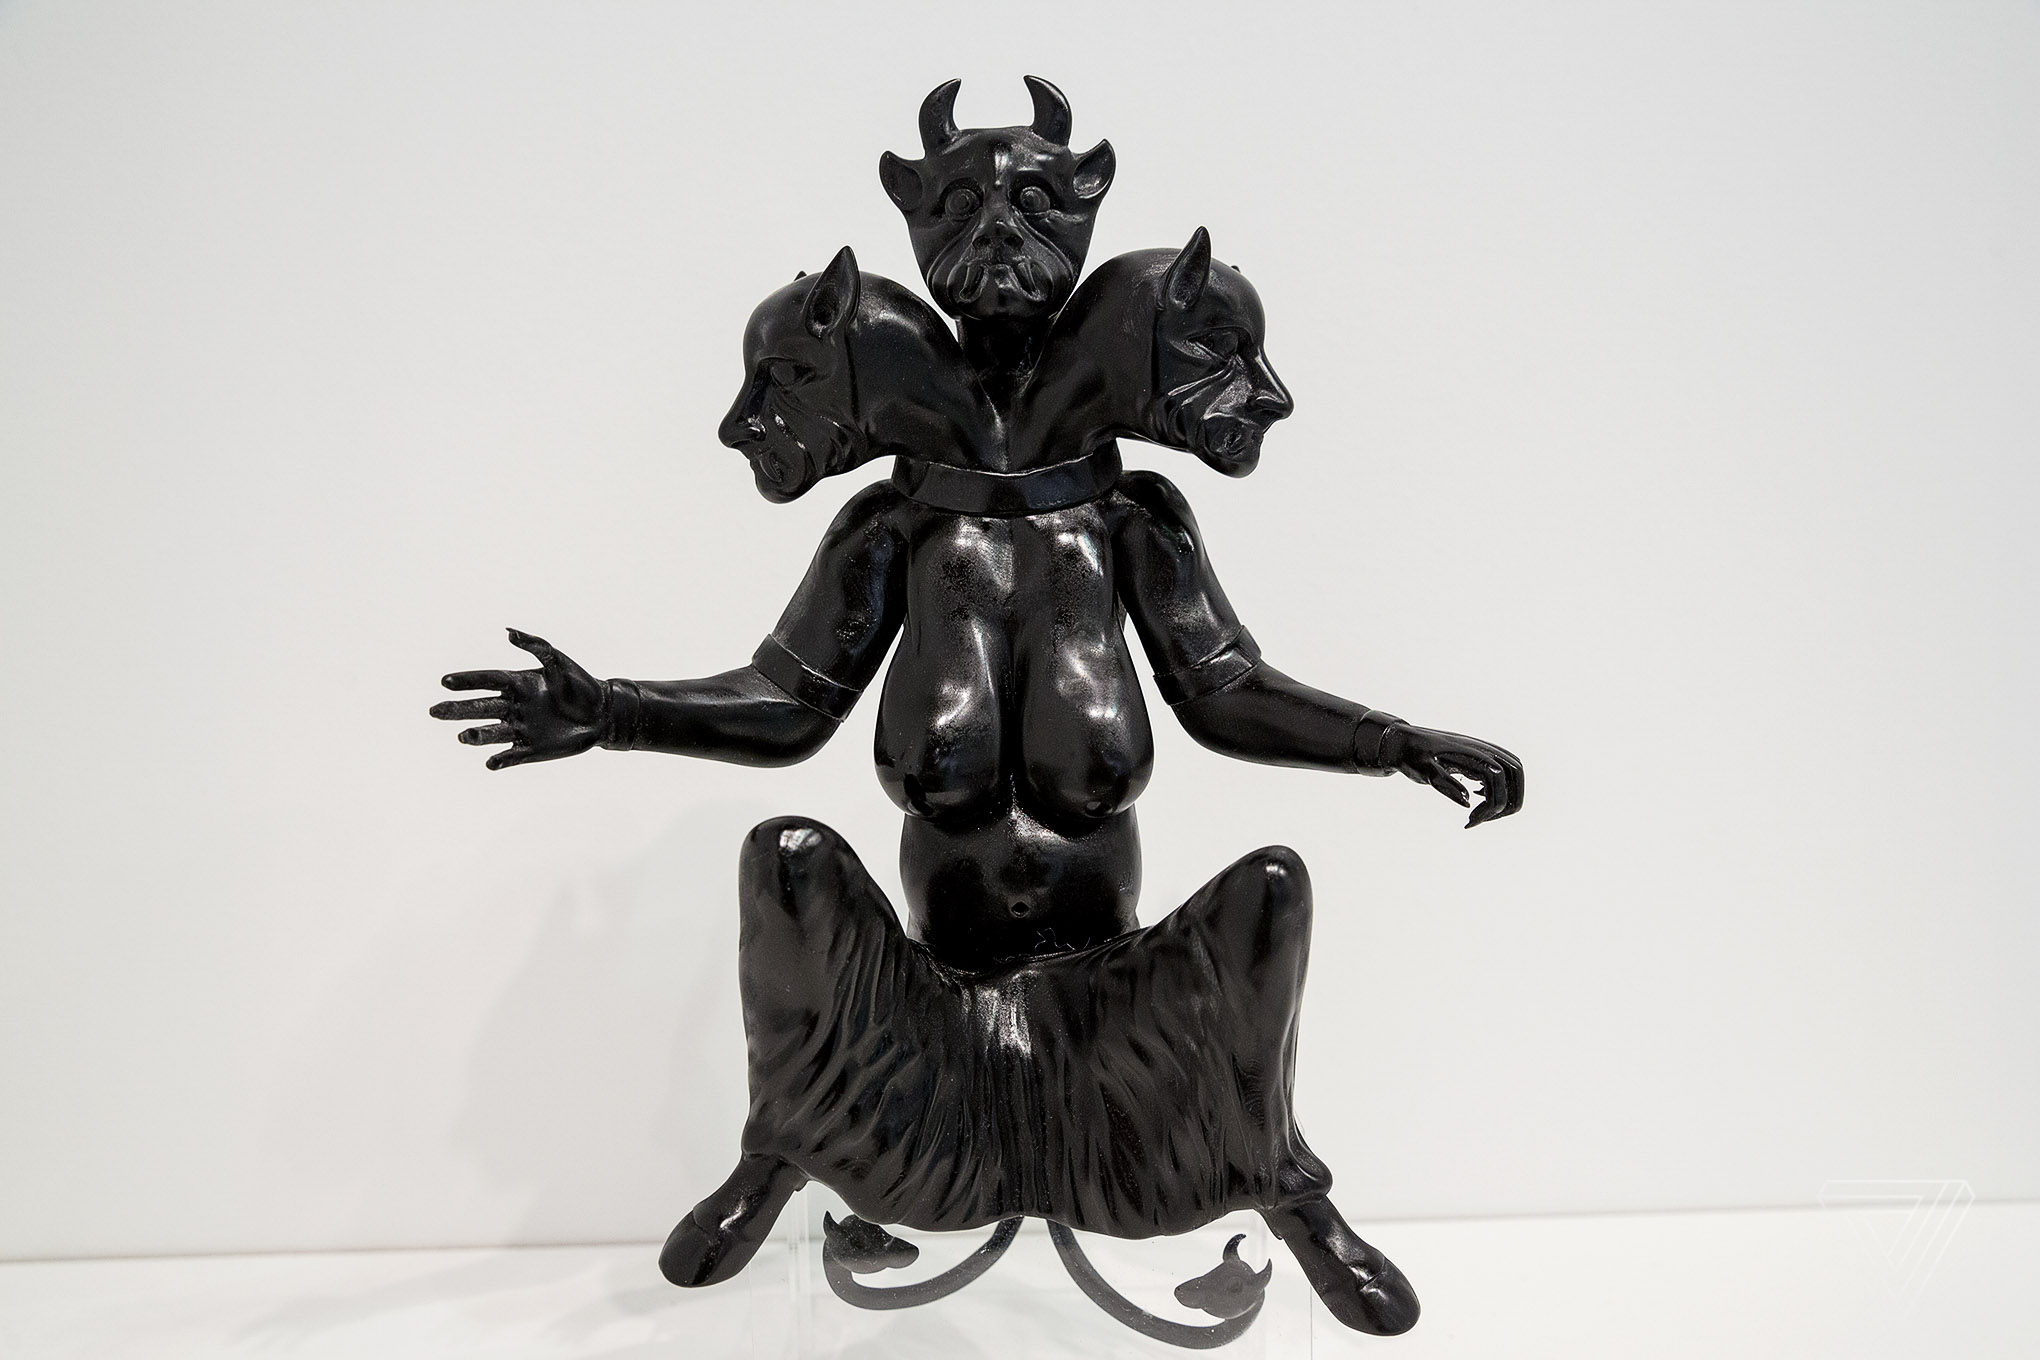 "3D printed in resin, the Huma (2017) sculpture stands at 12 inches tall. Huma is said to ""bring heat to the human body and is a symbol of high temperature, madness and hallucination."" The figure on view as part of Morehshin Allahyari's project, She Who See's The Unknown at the Upfor Gallery booth at the Armory Art Fair in New York City."